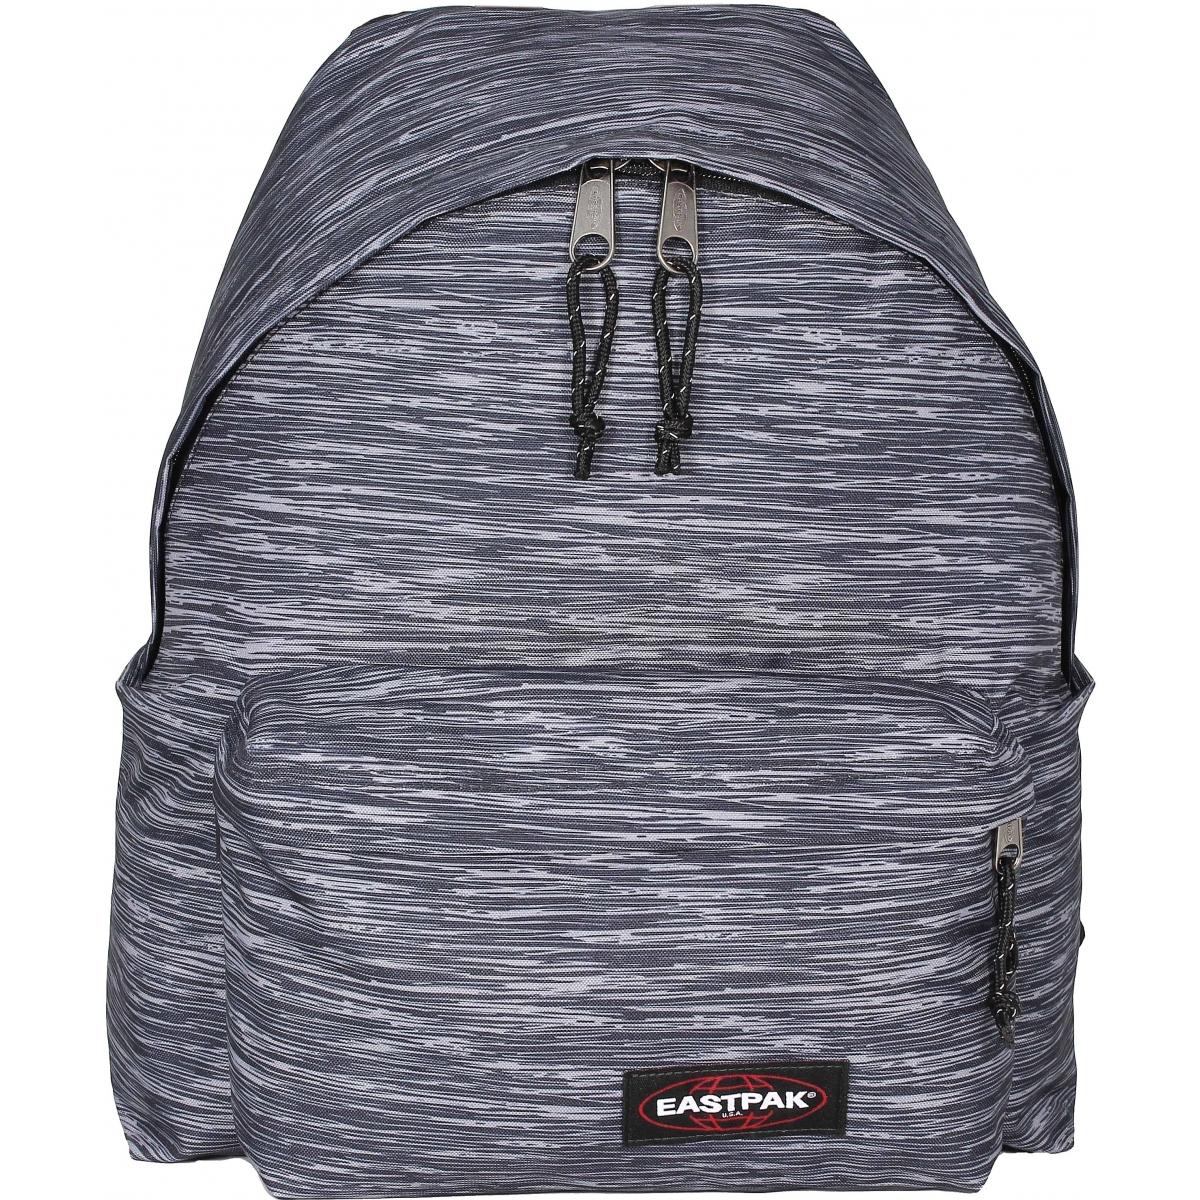 sac dos scolaire eastpak ek620 knit grey ek62087p couleur principale assortis. Black Bedroom Furniture Sets. Home Design Ideas